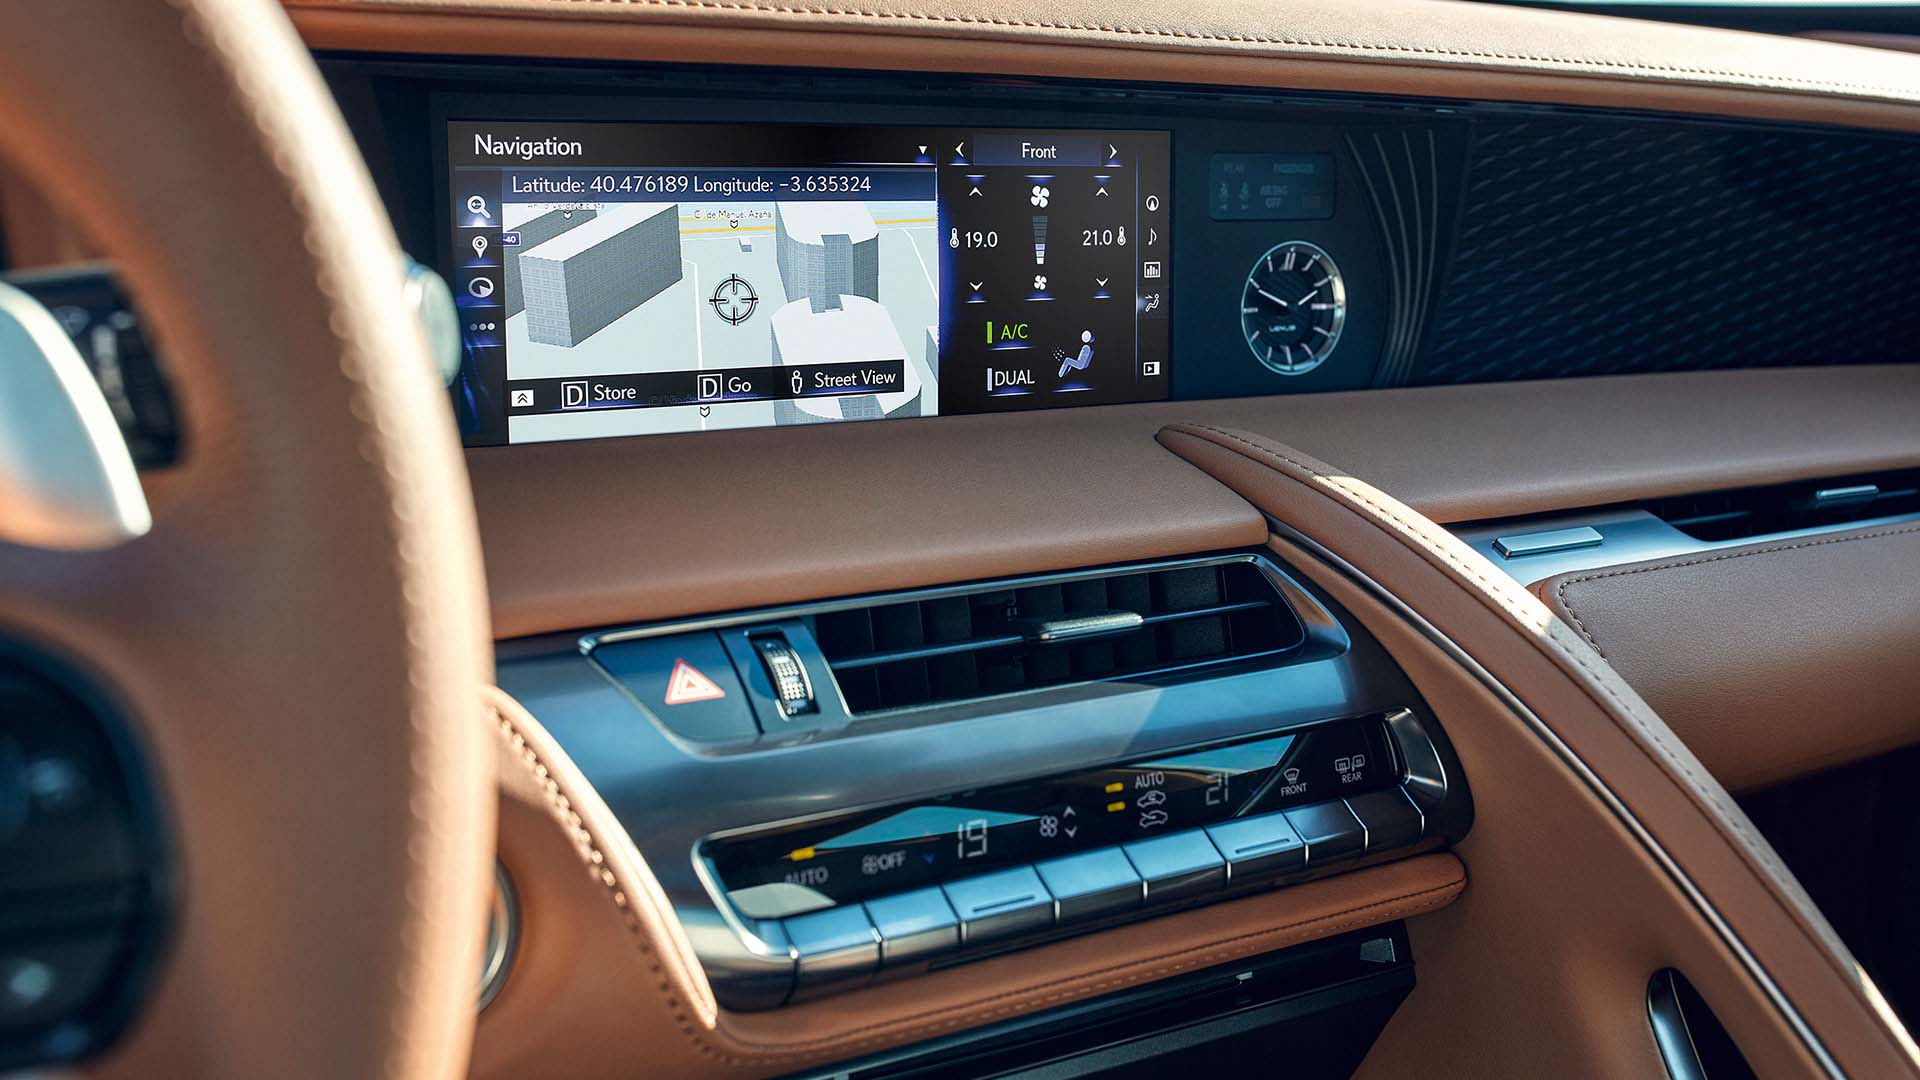 2017 lexus lc 500h features navigation